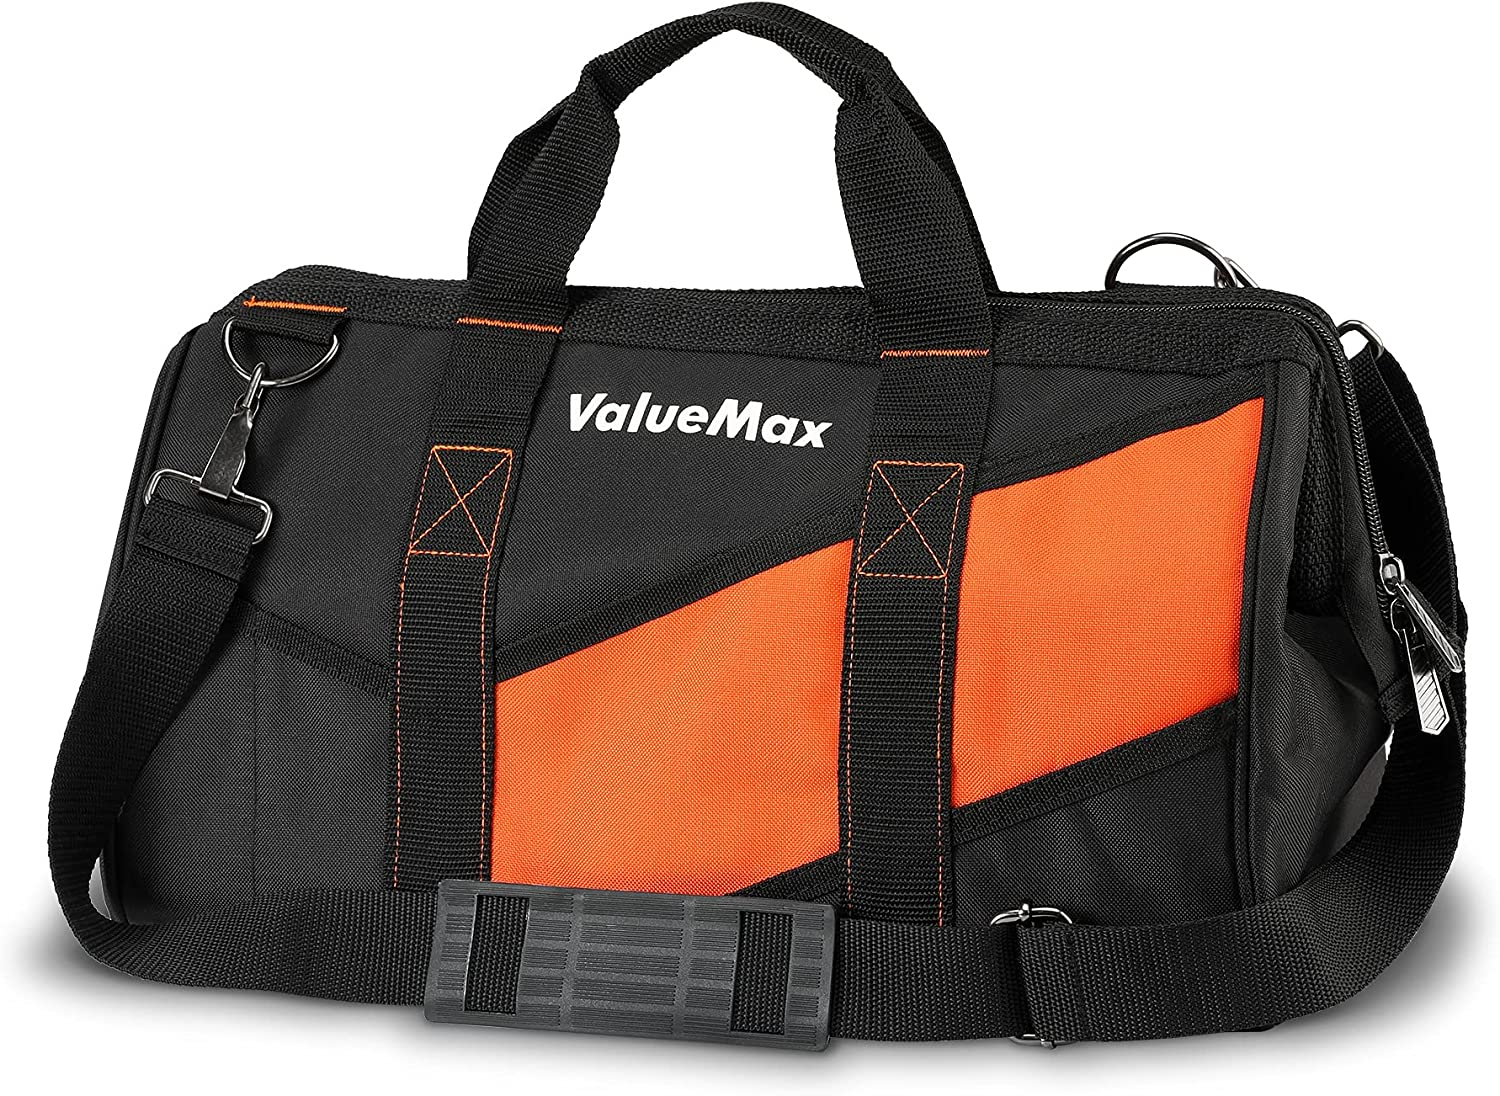 ValueMax 16-Inch Wide Mouth Tool Organizer Tote wi Max 46% OFF Popular Bag